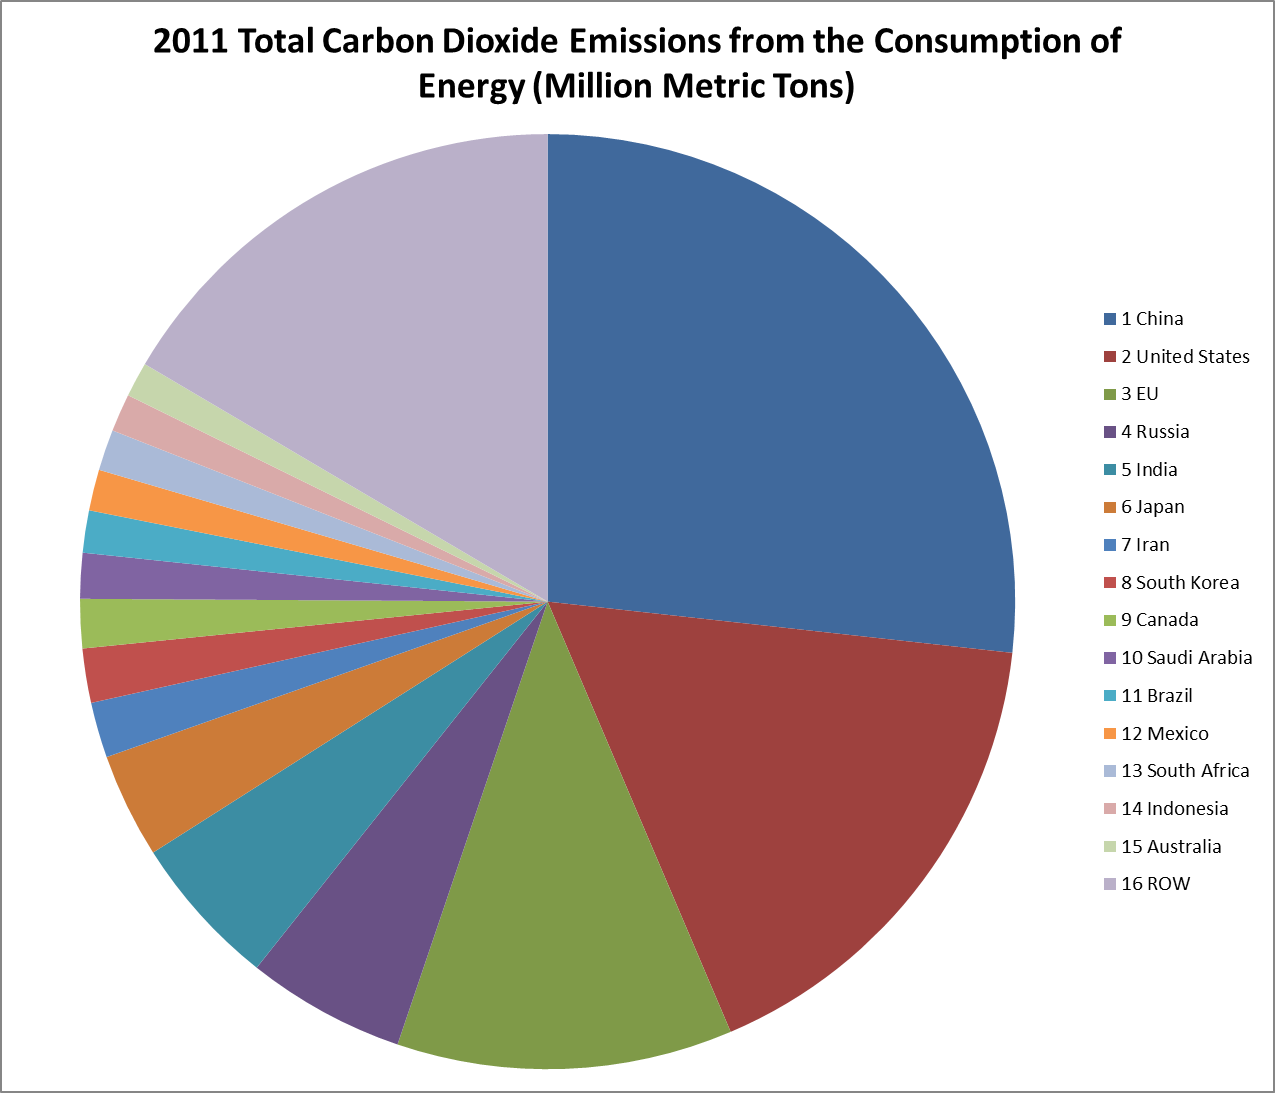 John rhys on energy climate and carbon flaws in eu climate sourcechart prepared by the union of concerned scientists nvjuhfo Choice Image